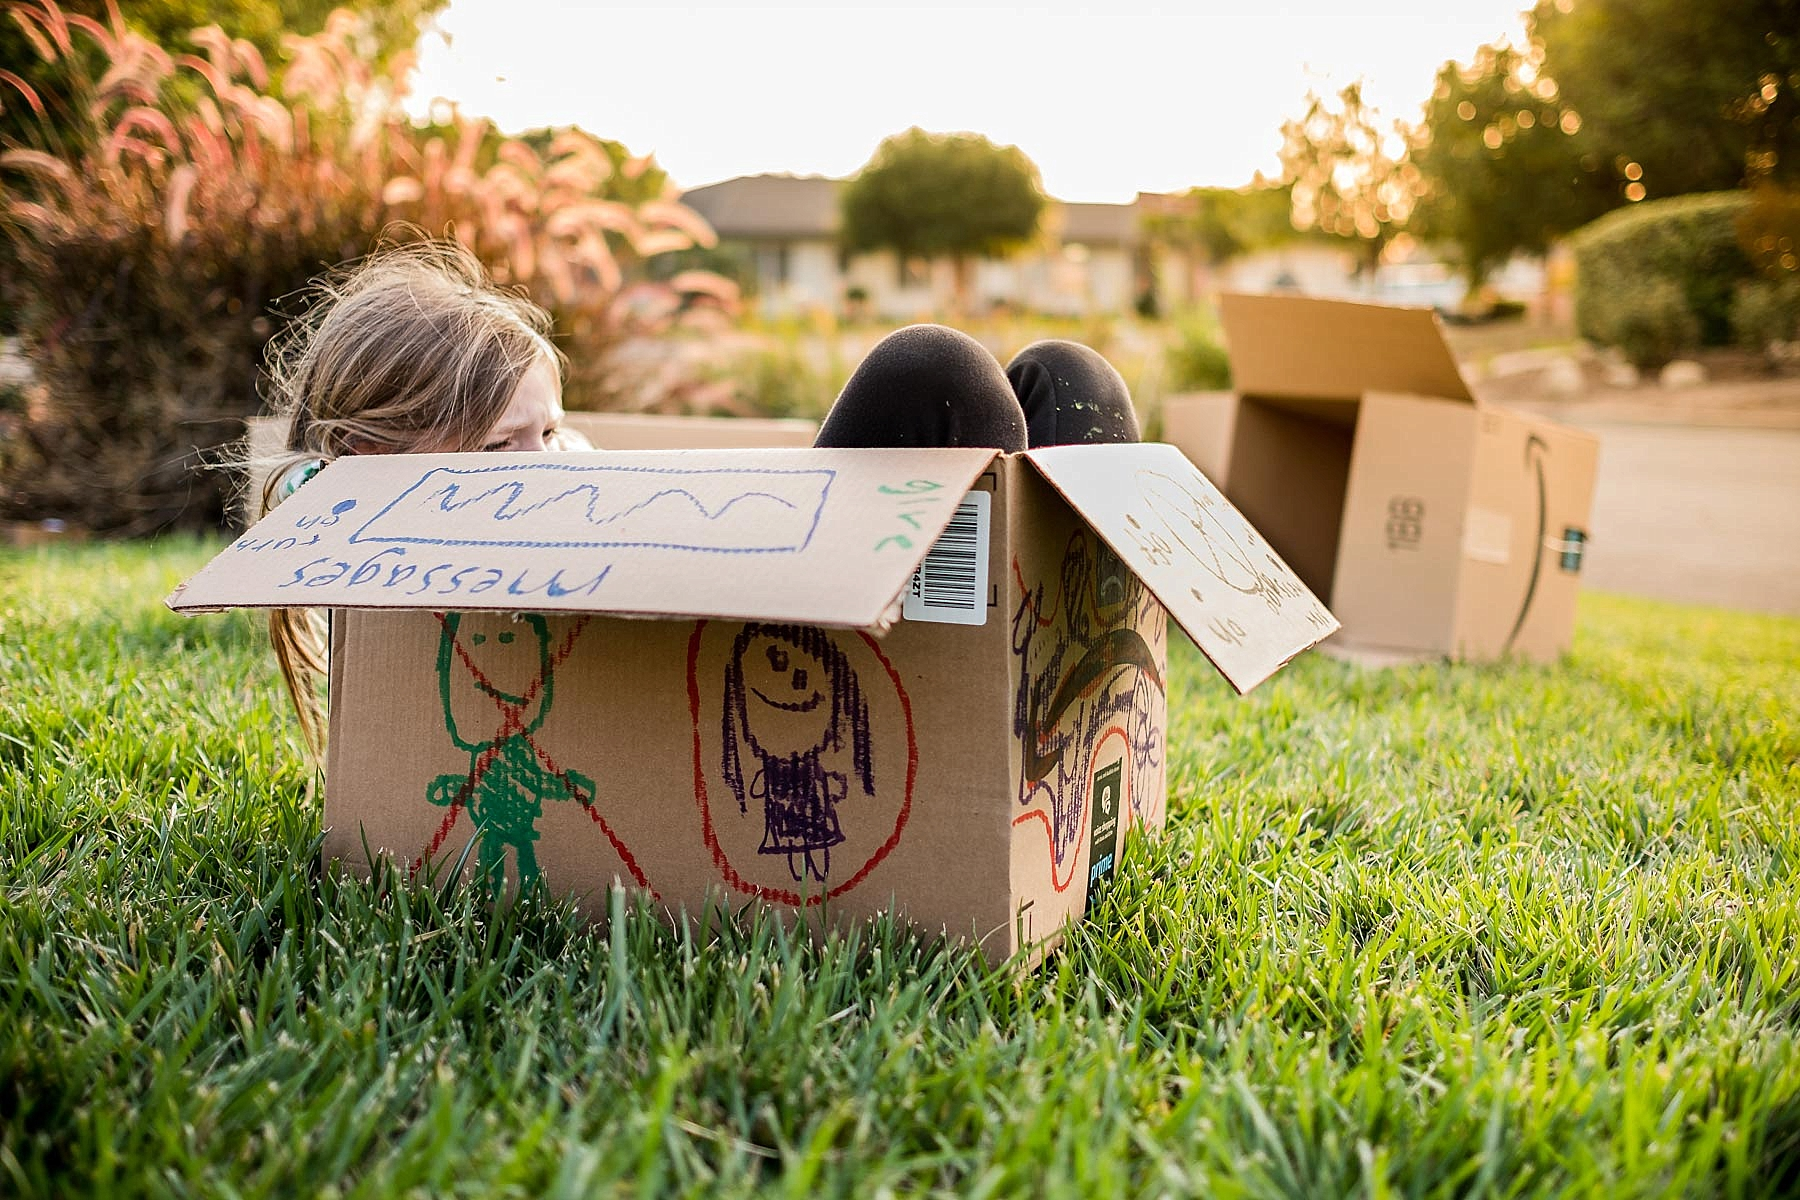 A pretty documentary photo of a girl sitting in a box during beautiful golden hour light. Taken by Erica Faith Photography in Claremont, CA